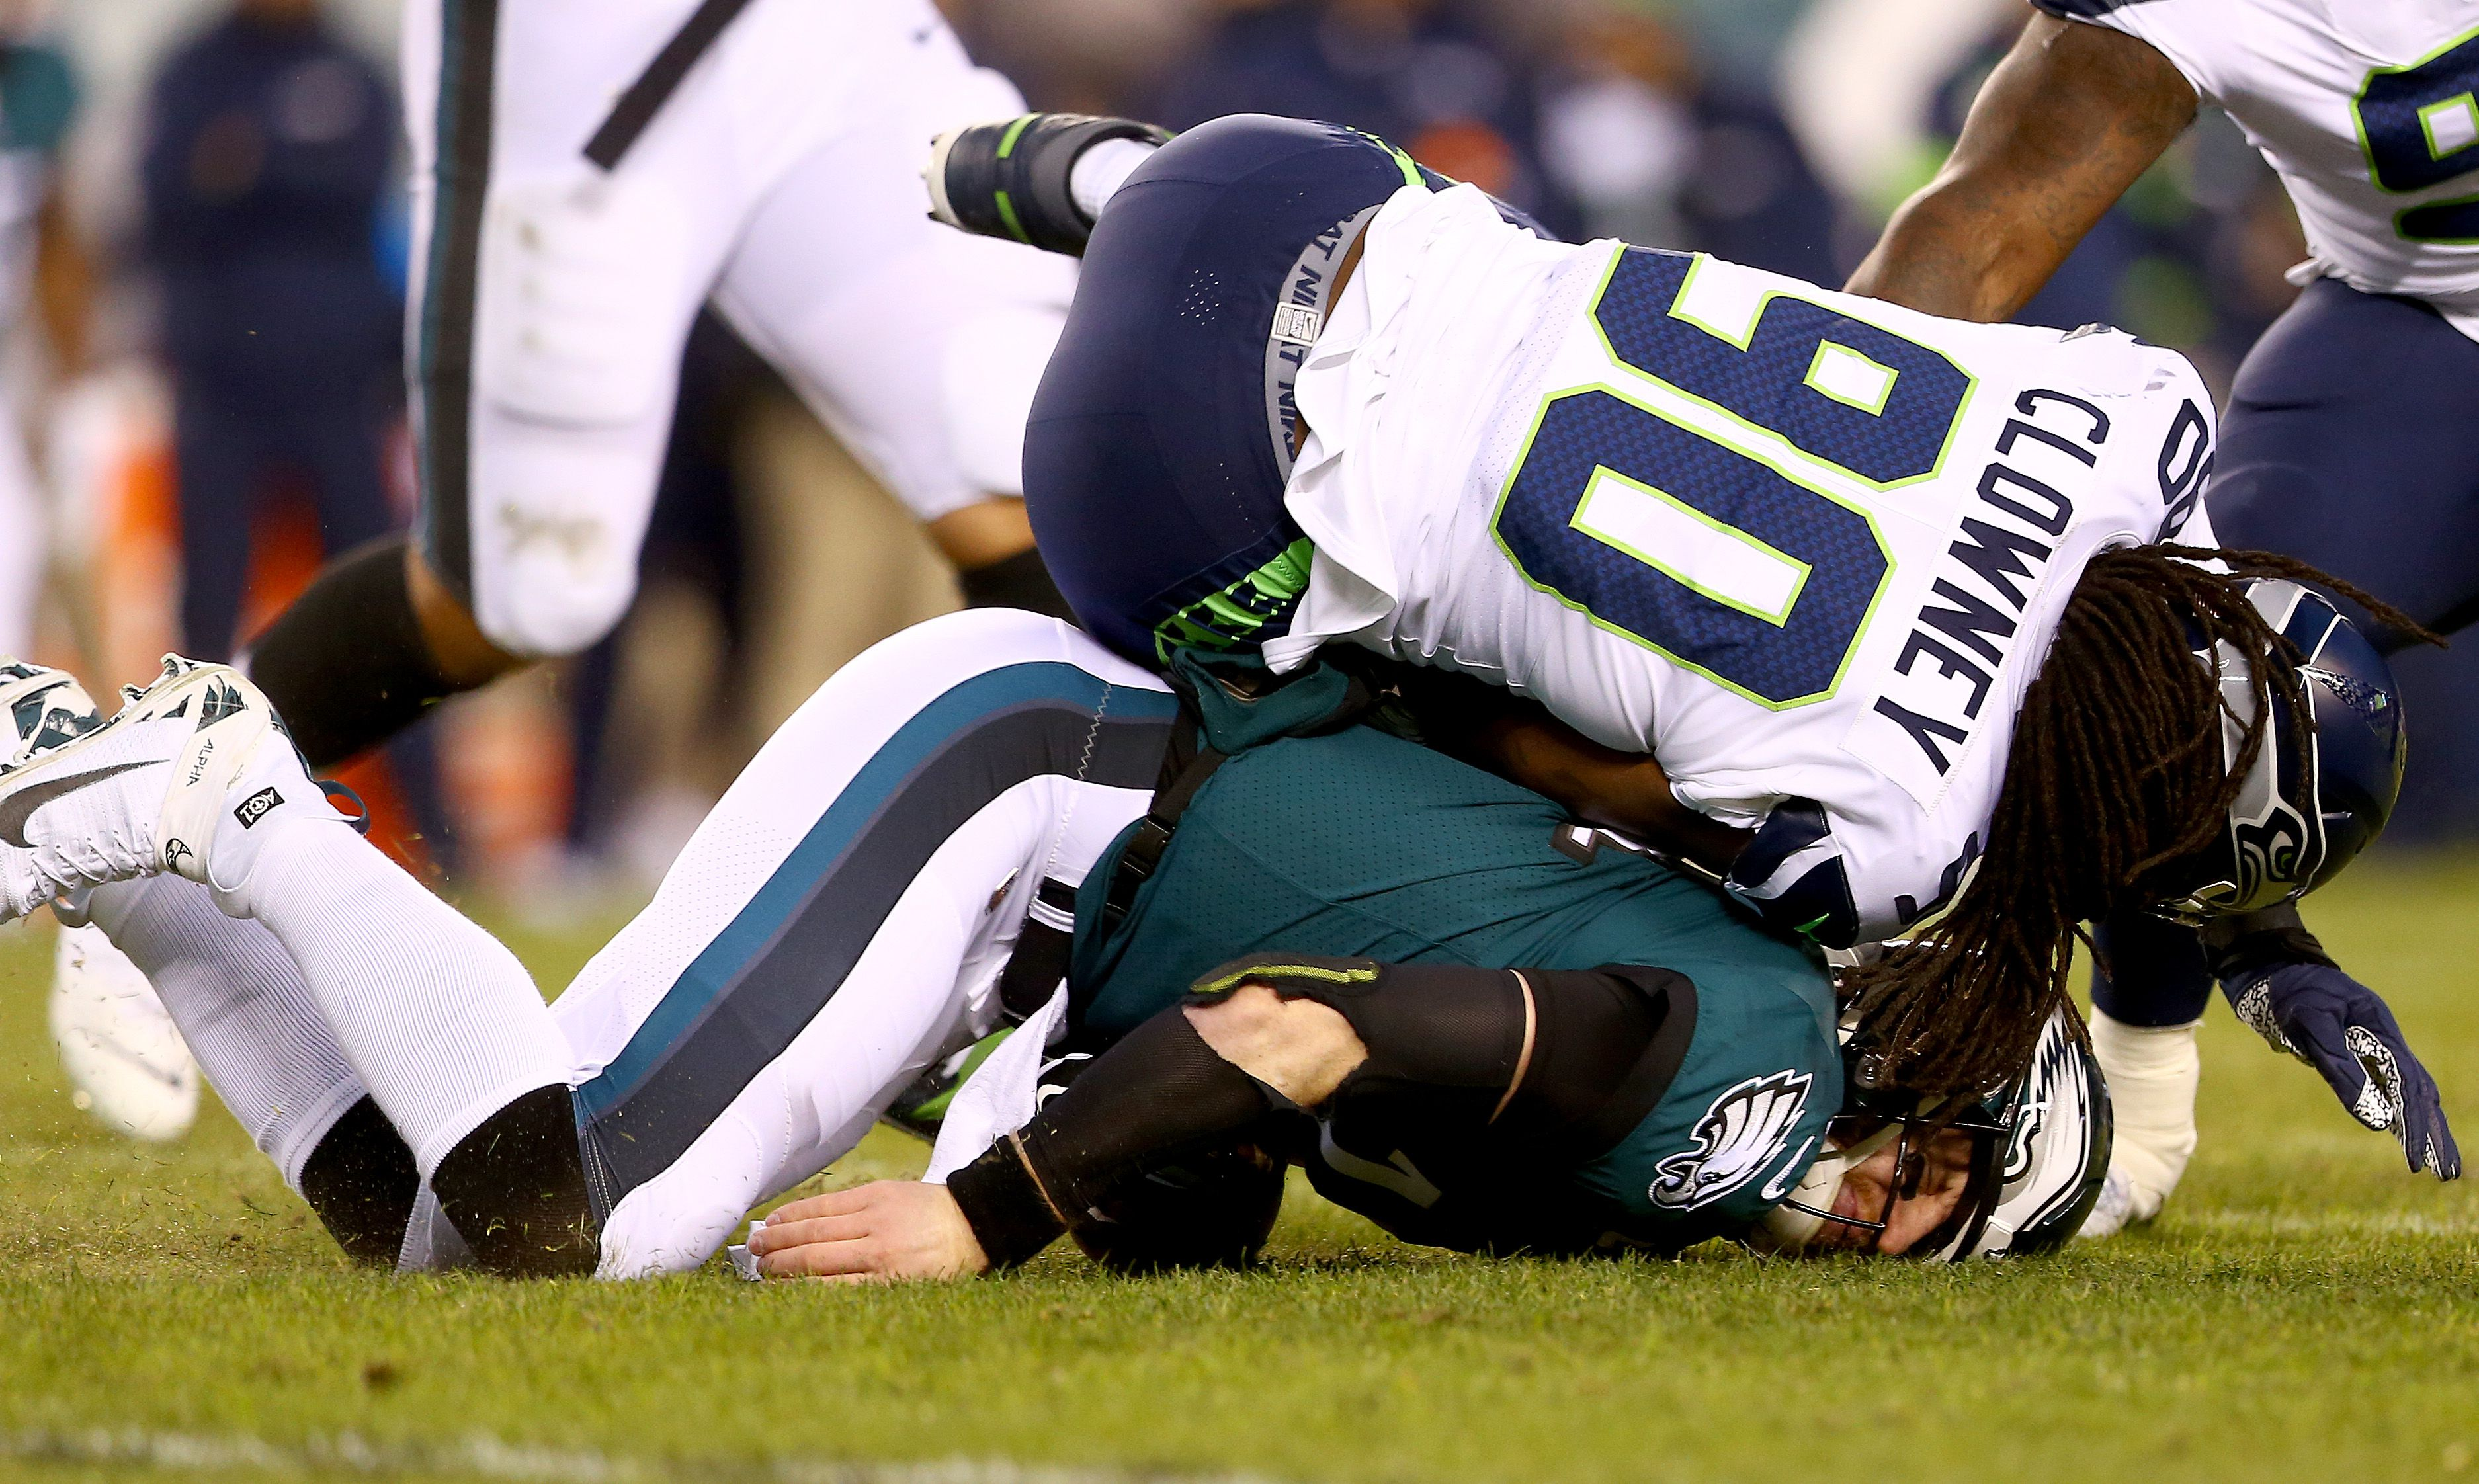 Carson Wentz Injury What The Referee Doug Pederson And Jadeveon Clowney Said About Hit On Eagles Qb Pennlive Com